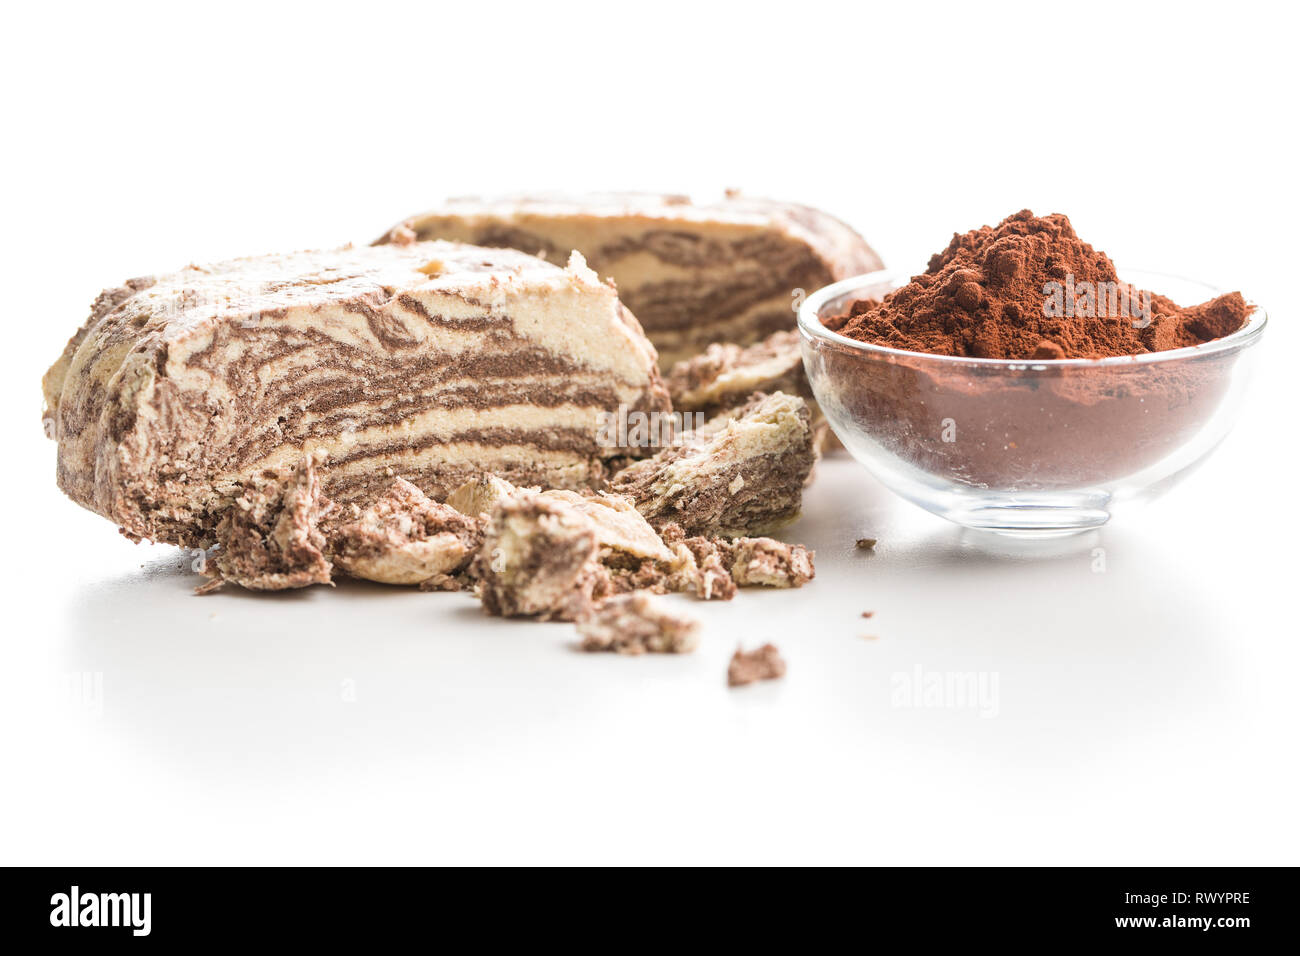 Sweet halva dessert slices with cocoa isolated on white background. - Stock Image